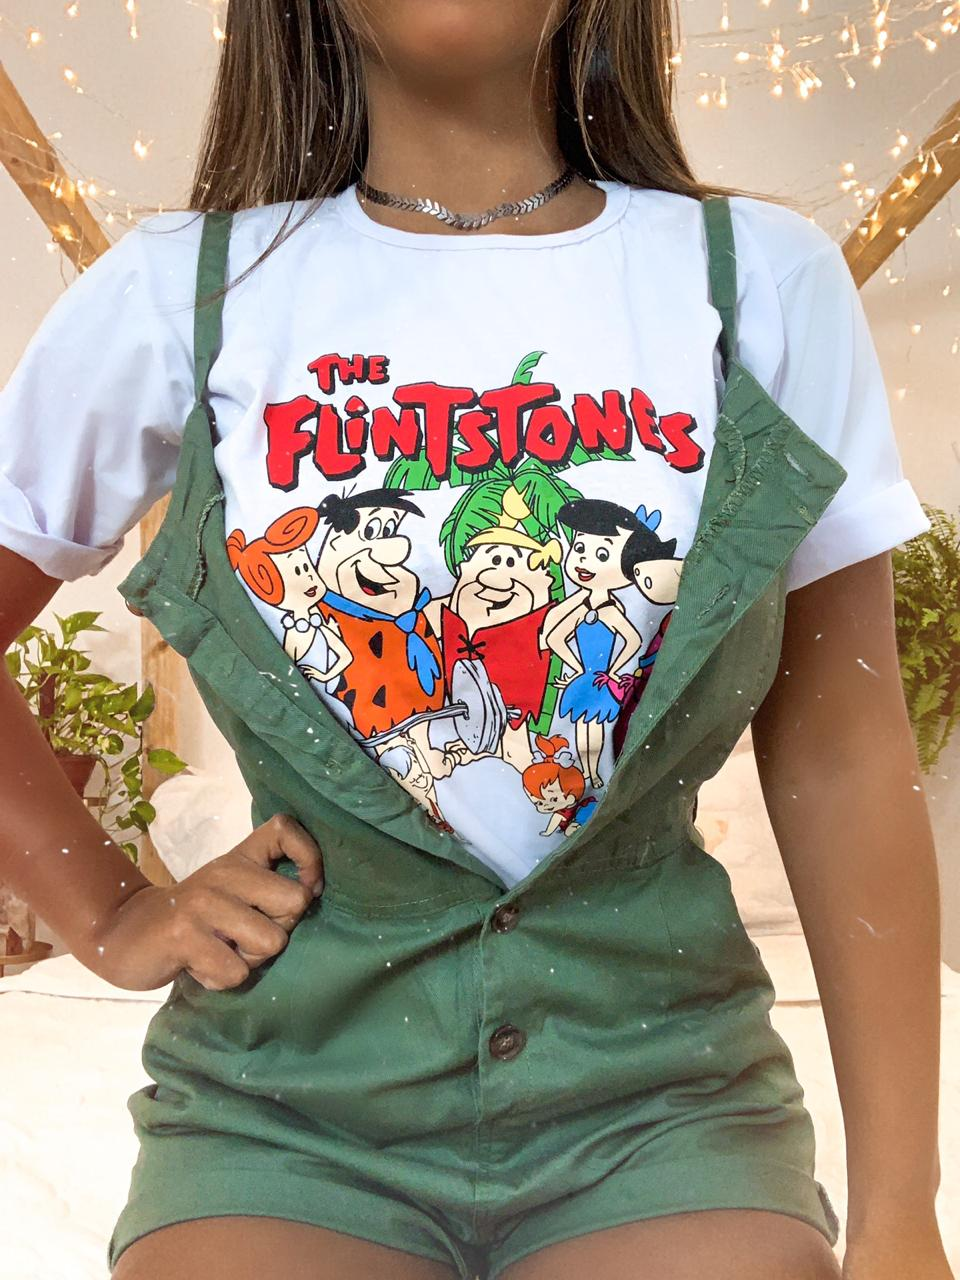 @T-SHIRT FLINTSTONES